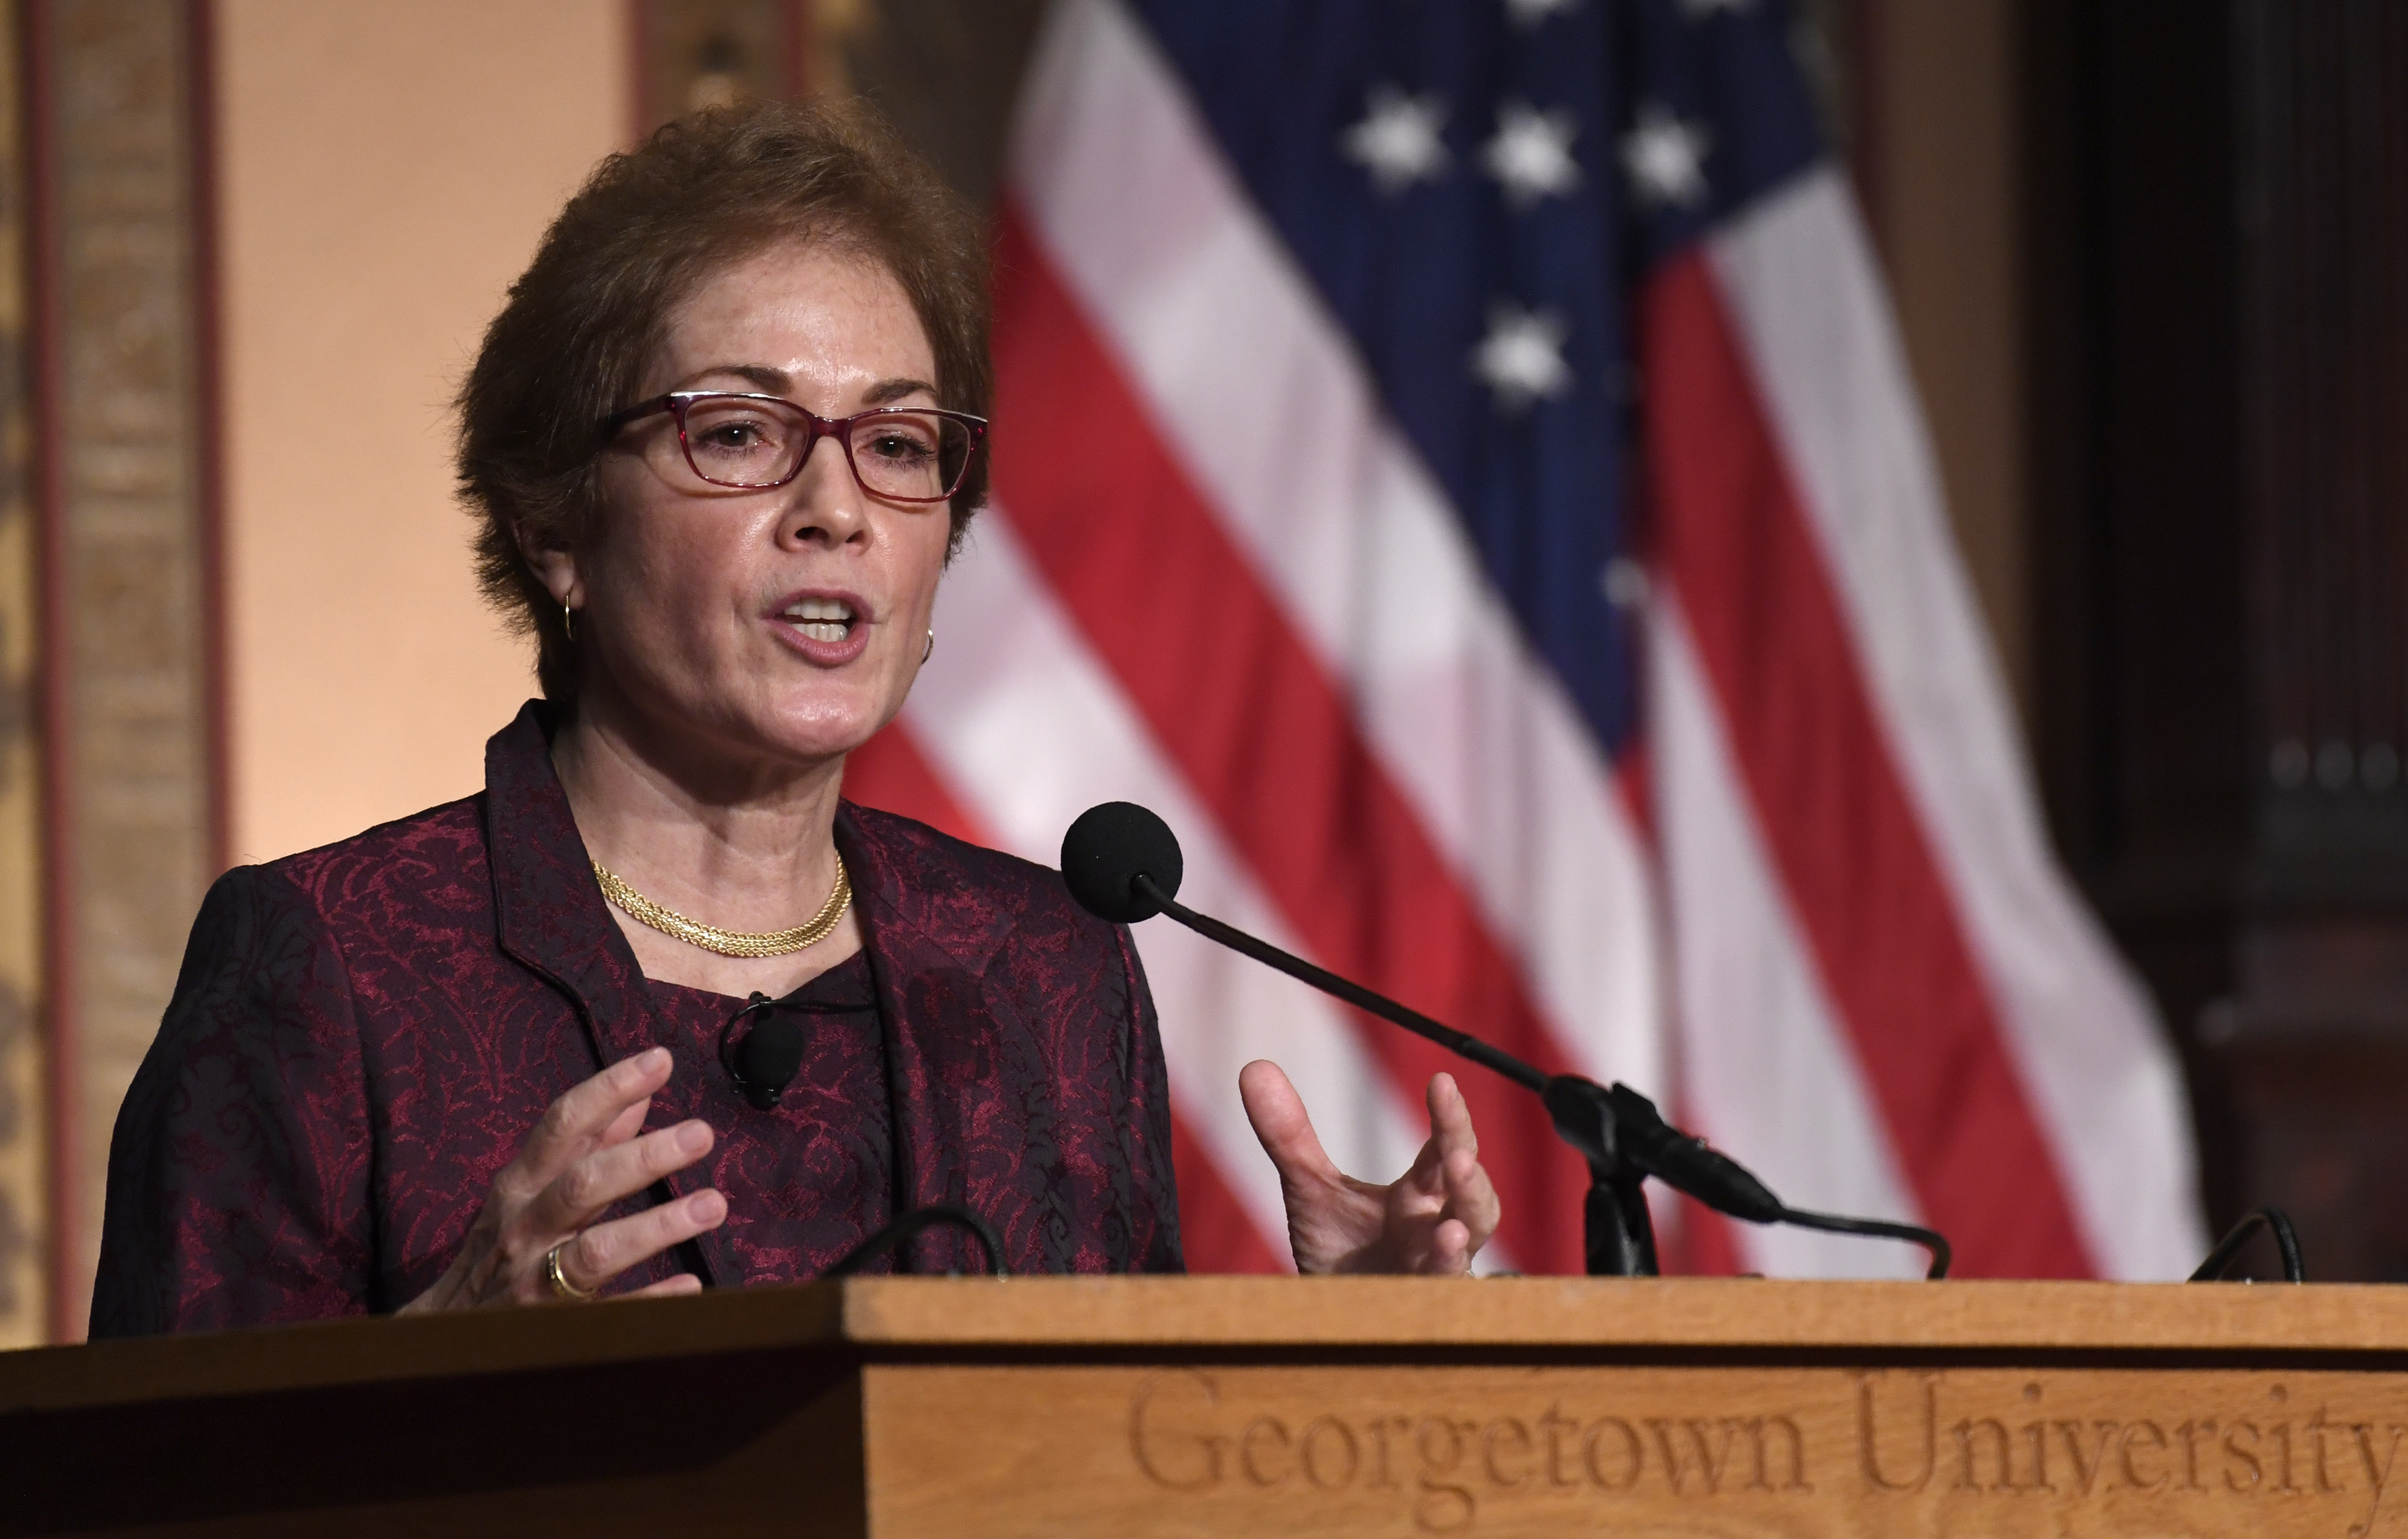 Former U.S. Ambassador to Ukraine Marie Yovanovitch speaks Wednesday at Georgetown University where she received the Trainor Award for excellence in diplomacy